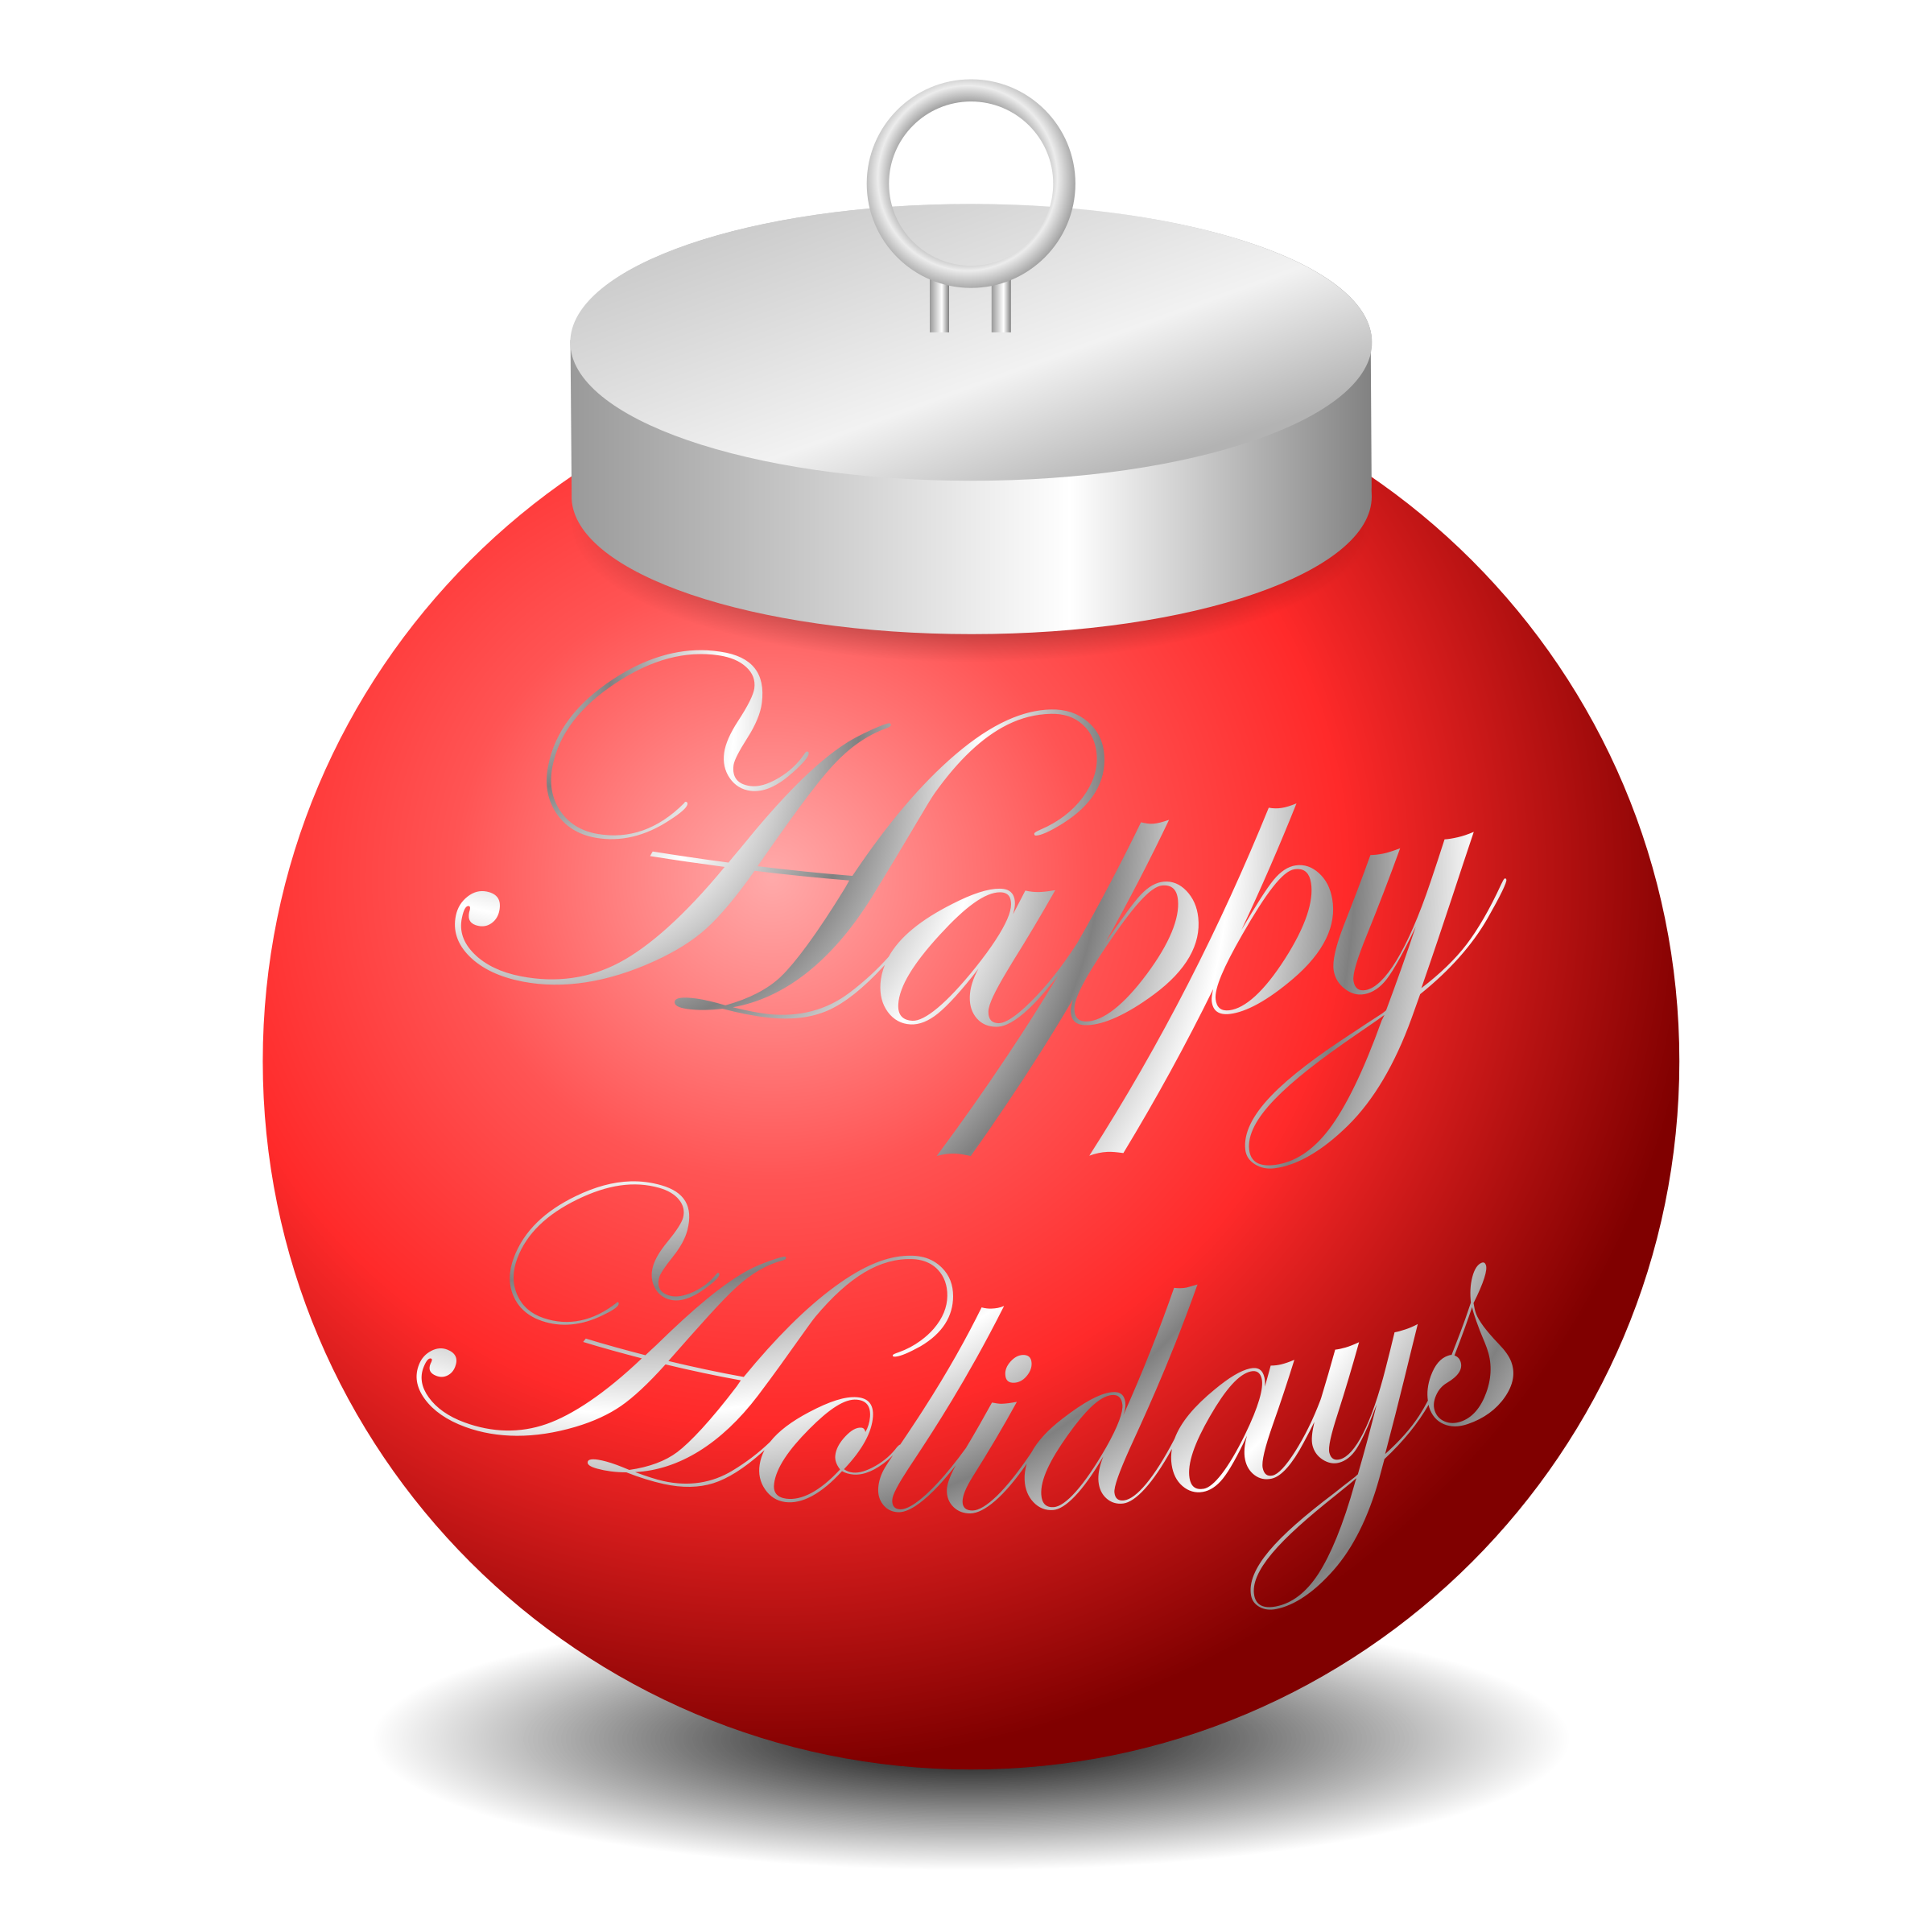 Happy holidays clipart christmas. Free cliparts download clip